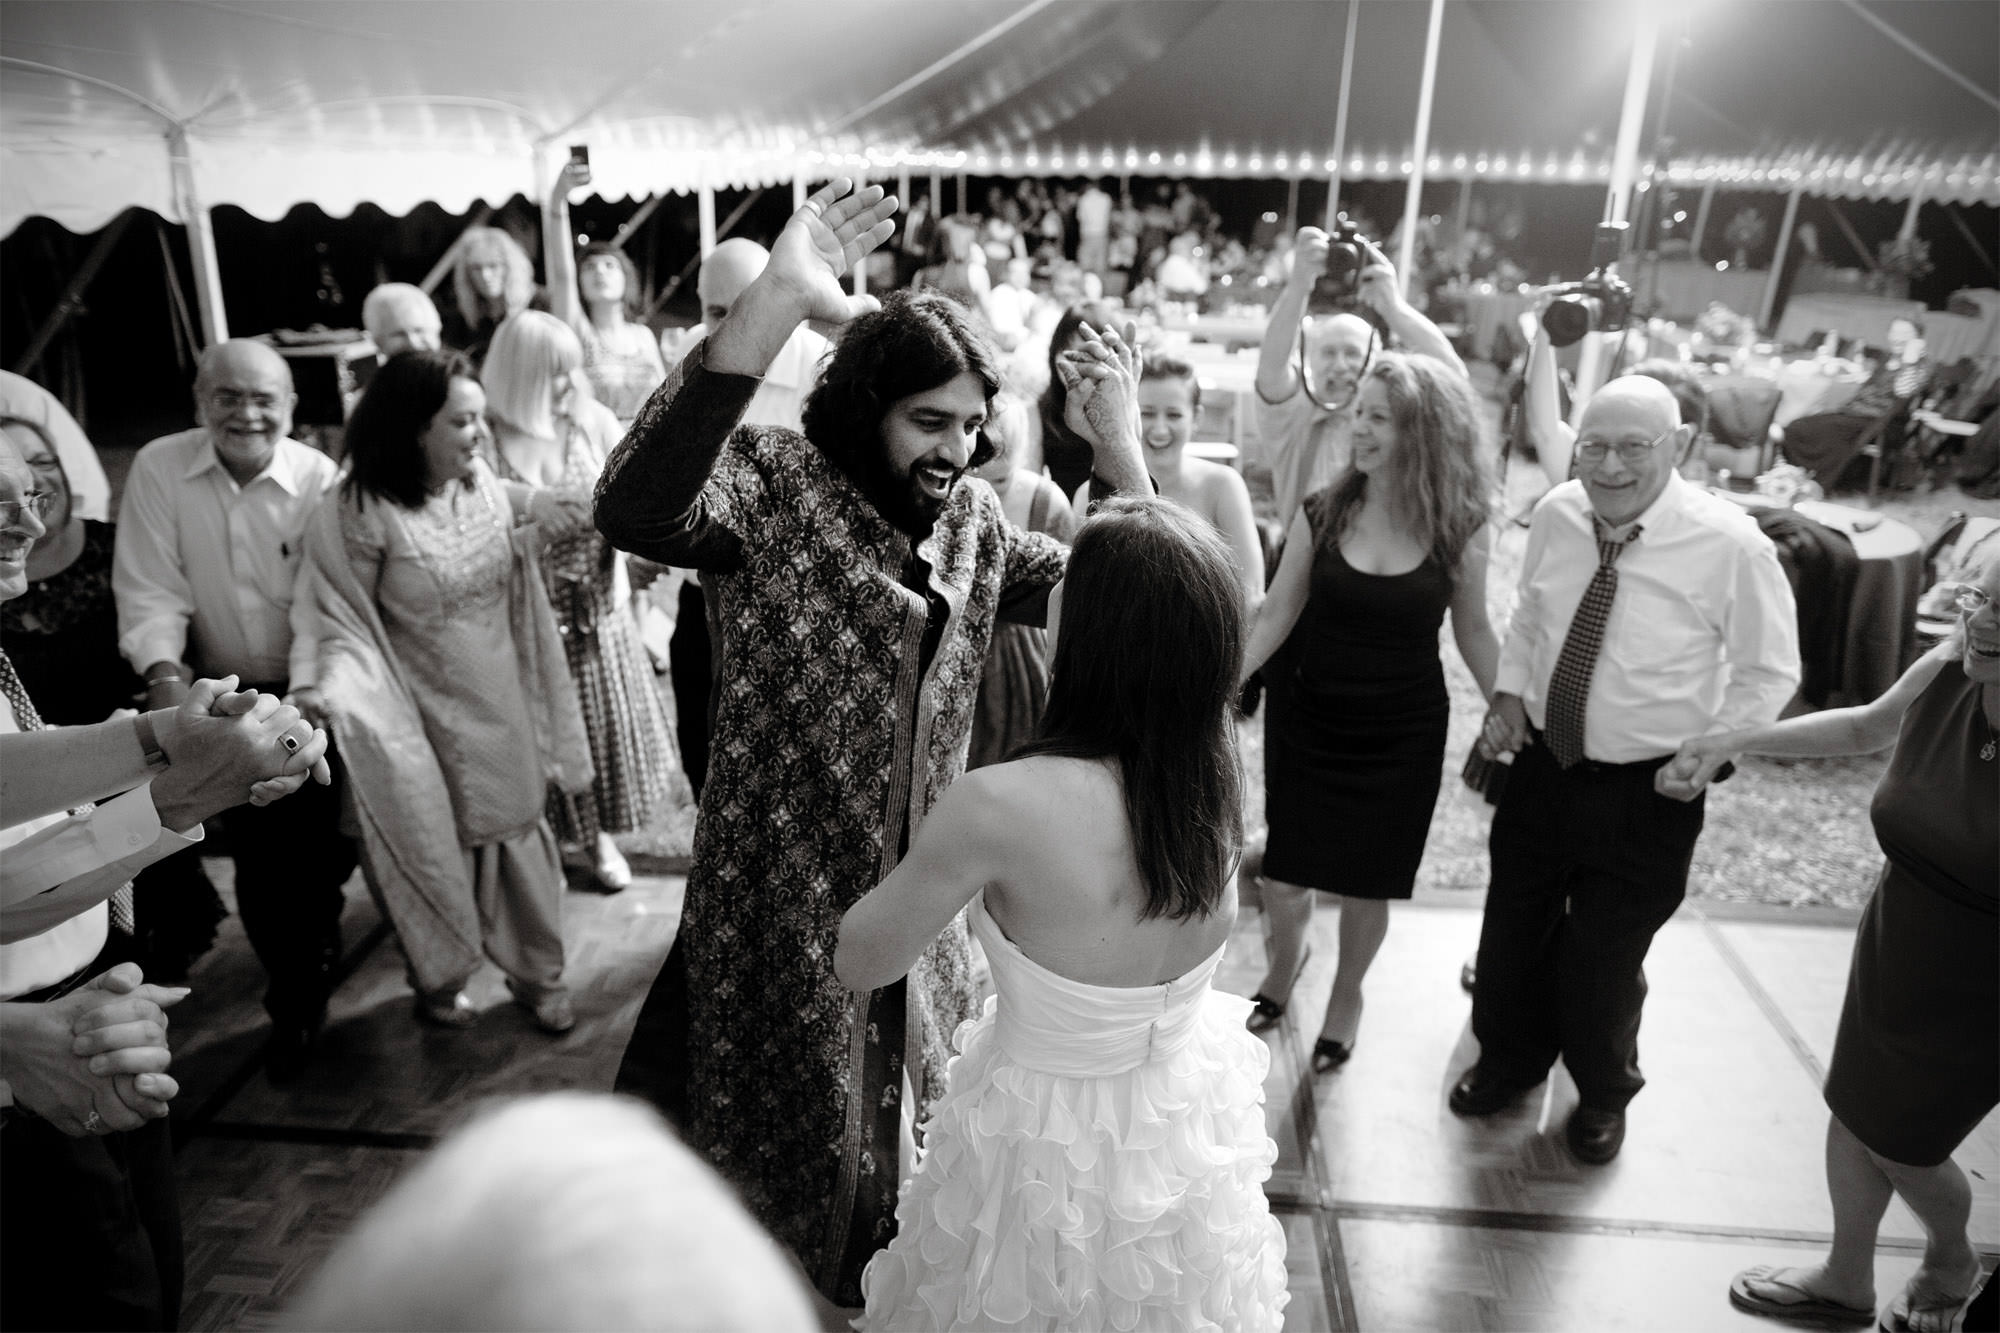 Guests dance during the wedding reception at Doukenie Winery.